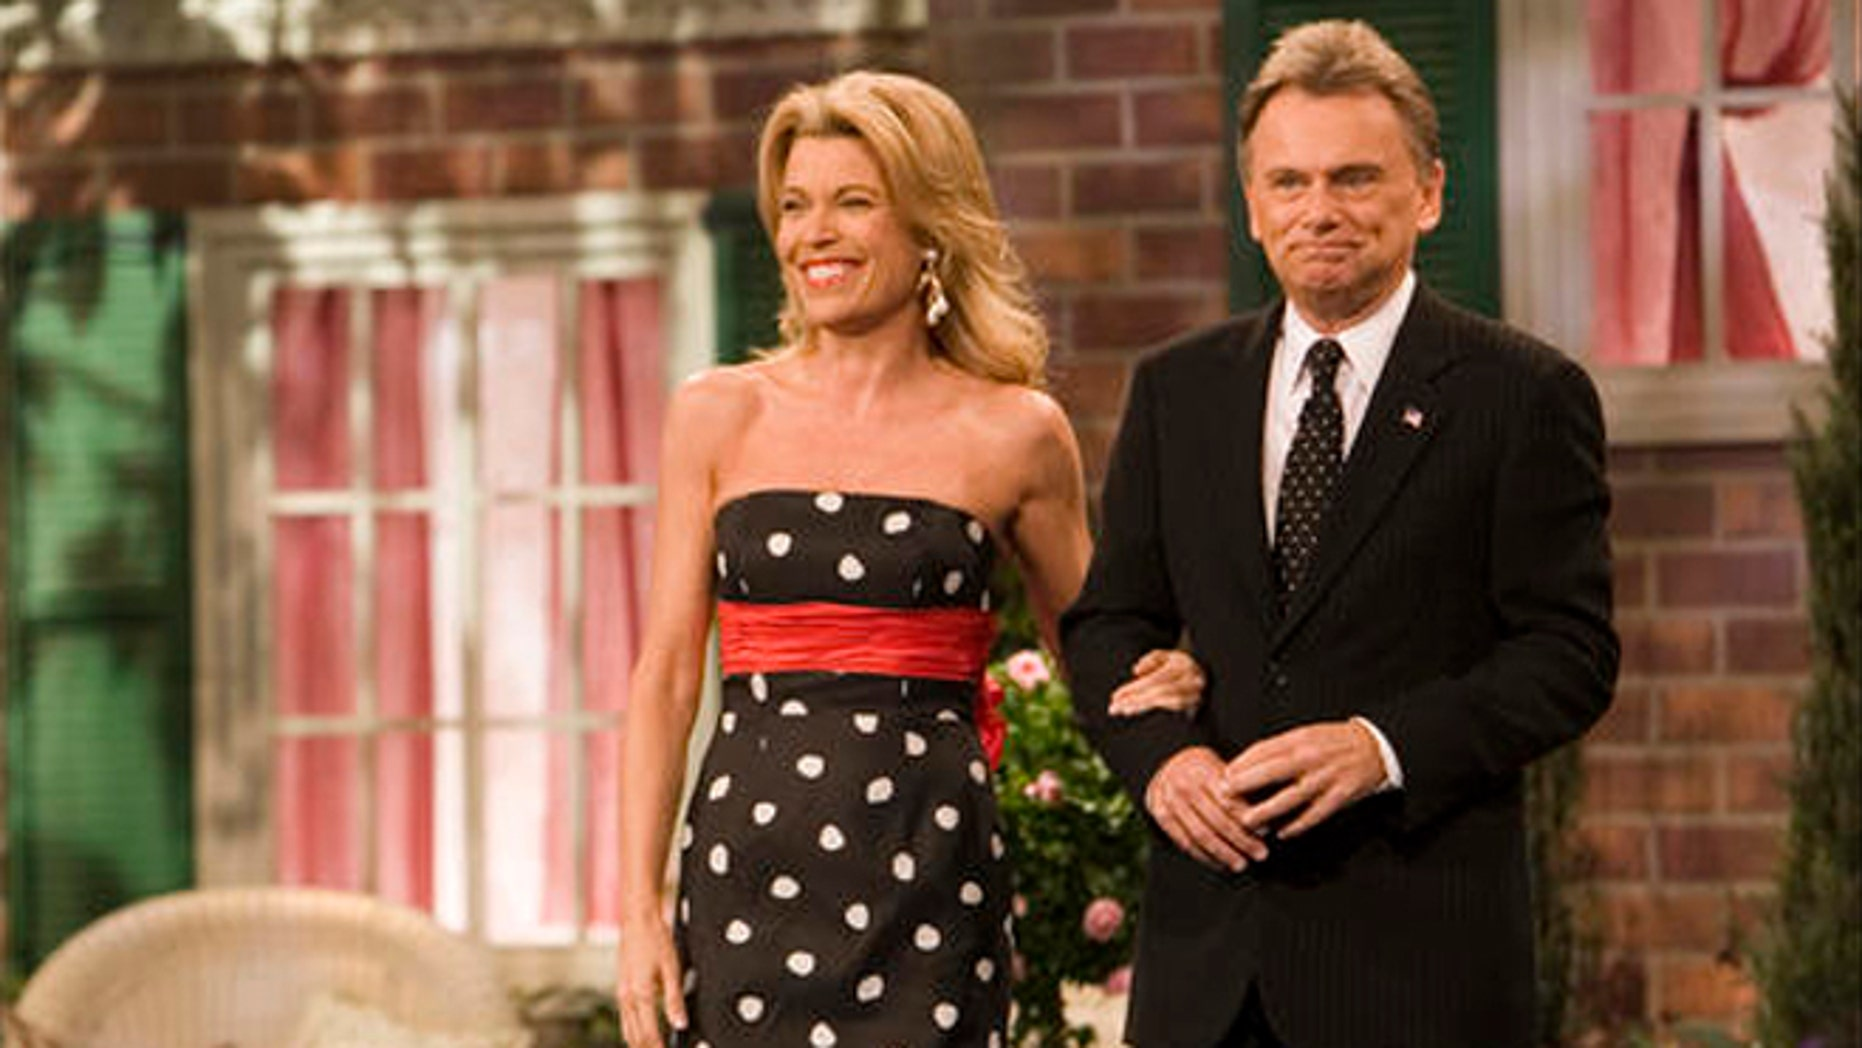 Wheel of fortune contestants bad spelling proves embarrassing vanna white a south carolina native and pat sajak co hosts of m4hsunfo